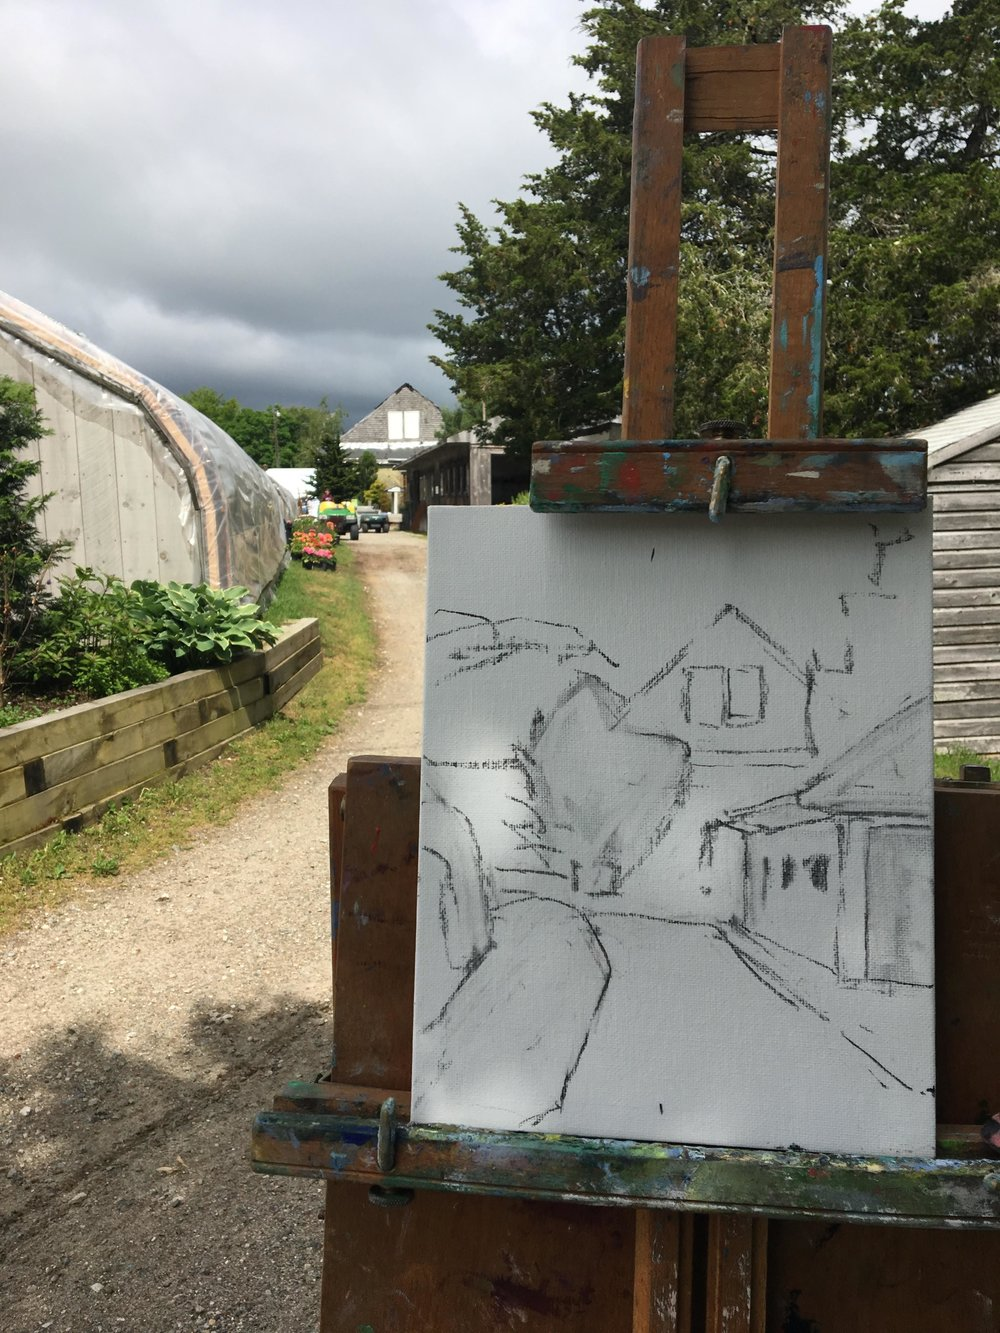 Step 1, sketch in scene with vine charcoal